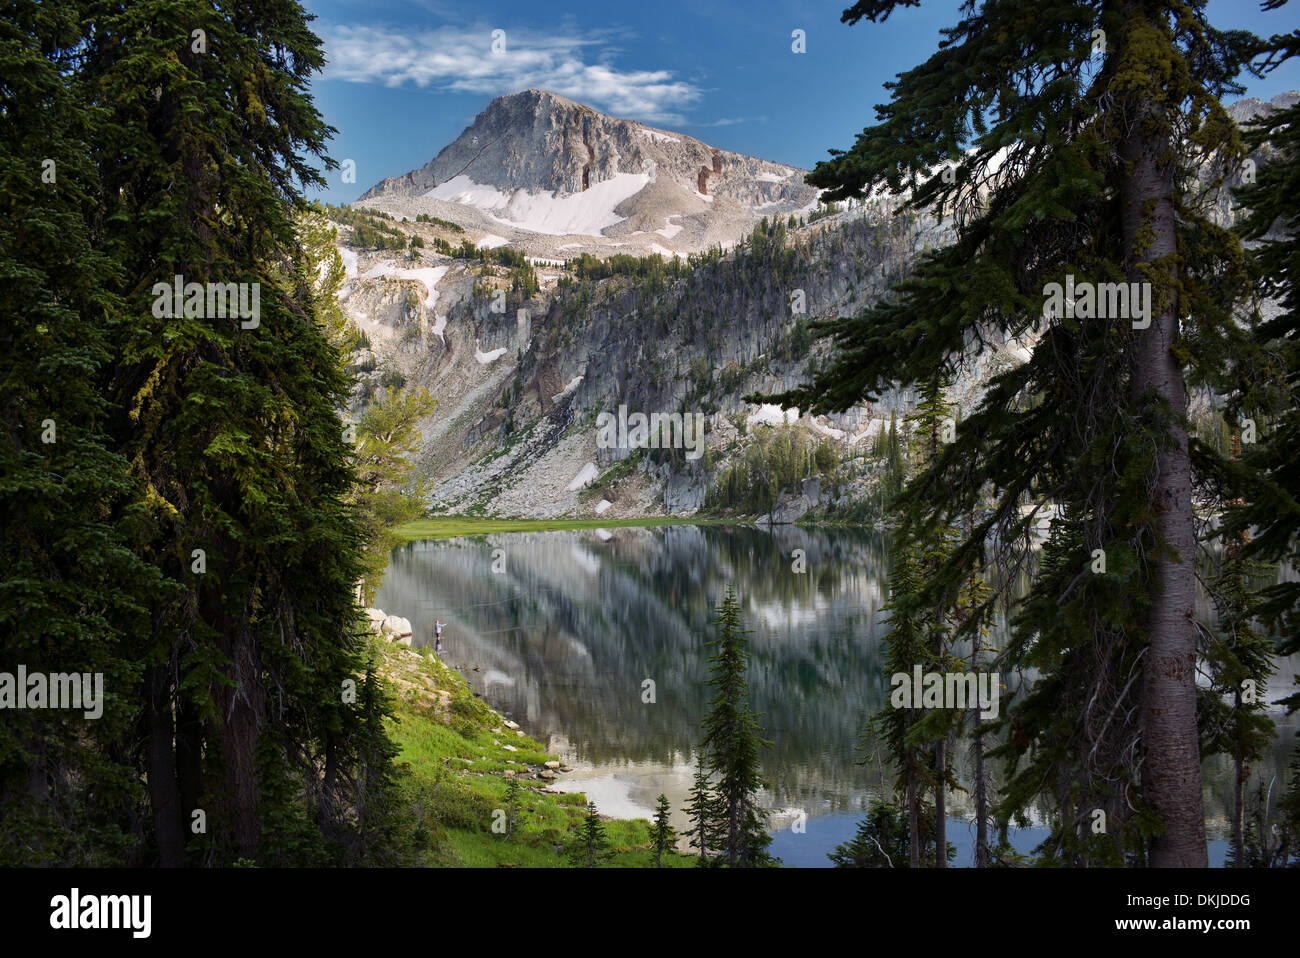 Fly fisherman and reflection in Mirror Lake with Eagle Cap Mountain. Eagle Cap Wilderness, Oregon - Stock Image